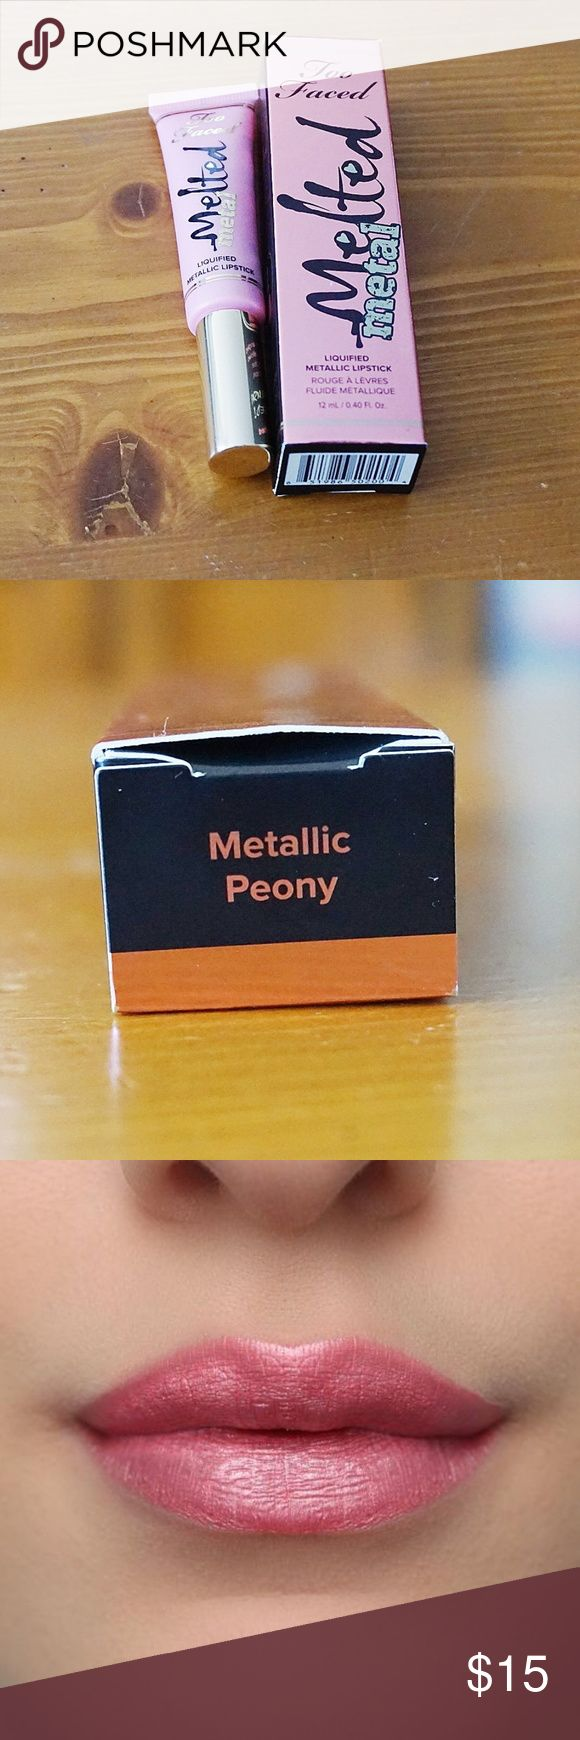 Too Faced Melted Metal Melted Peony Lipstick Too Faced Melted Metal Melted Peony Lipstick. Full Size. New in Box. Really pretty pink lipstick with metallic sheen.  Offers Welcome Bundle for a Discount Ships 1-3 Days Too Faced Makeup Lipstick